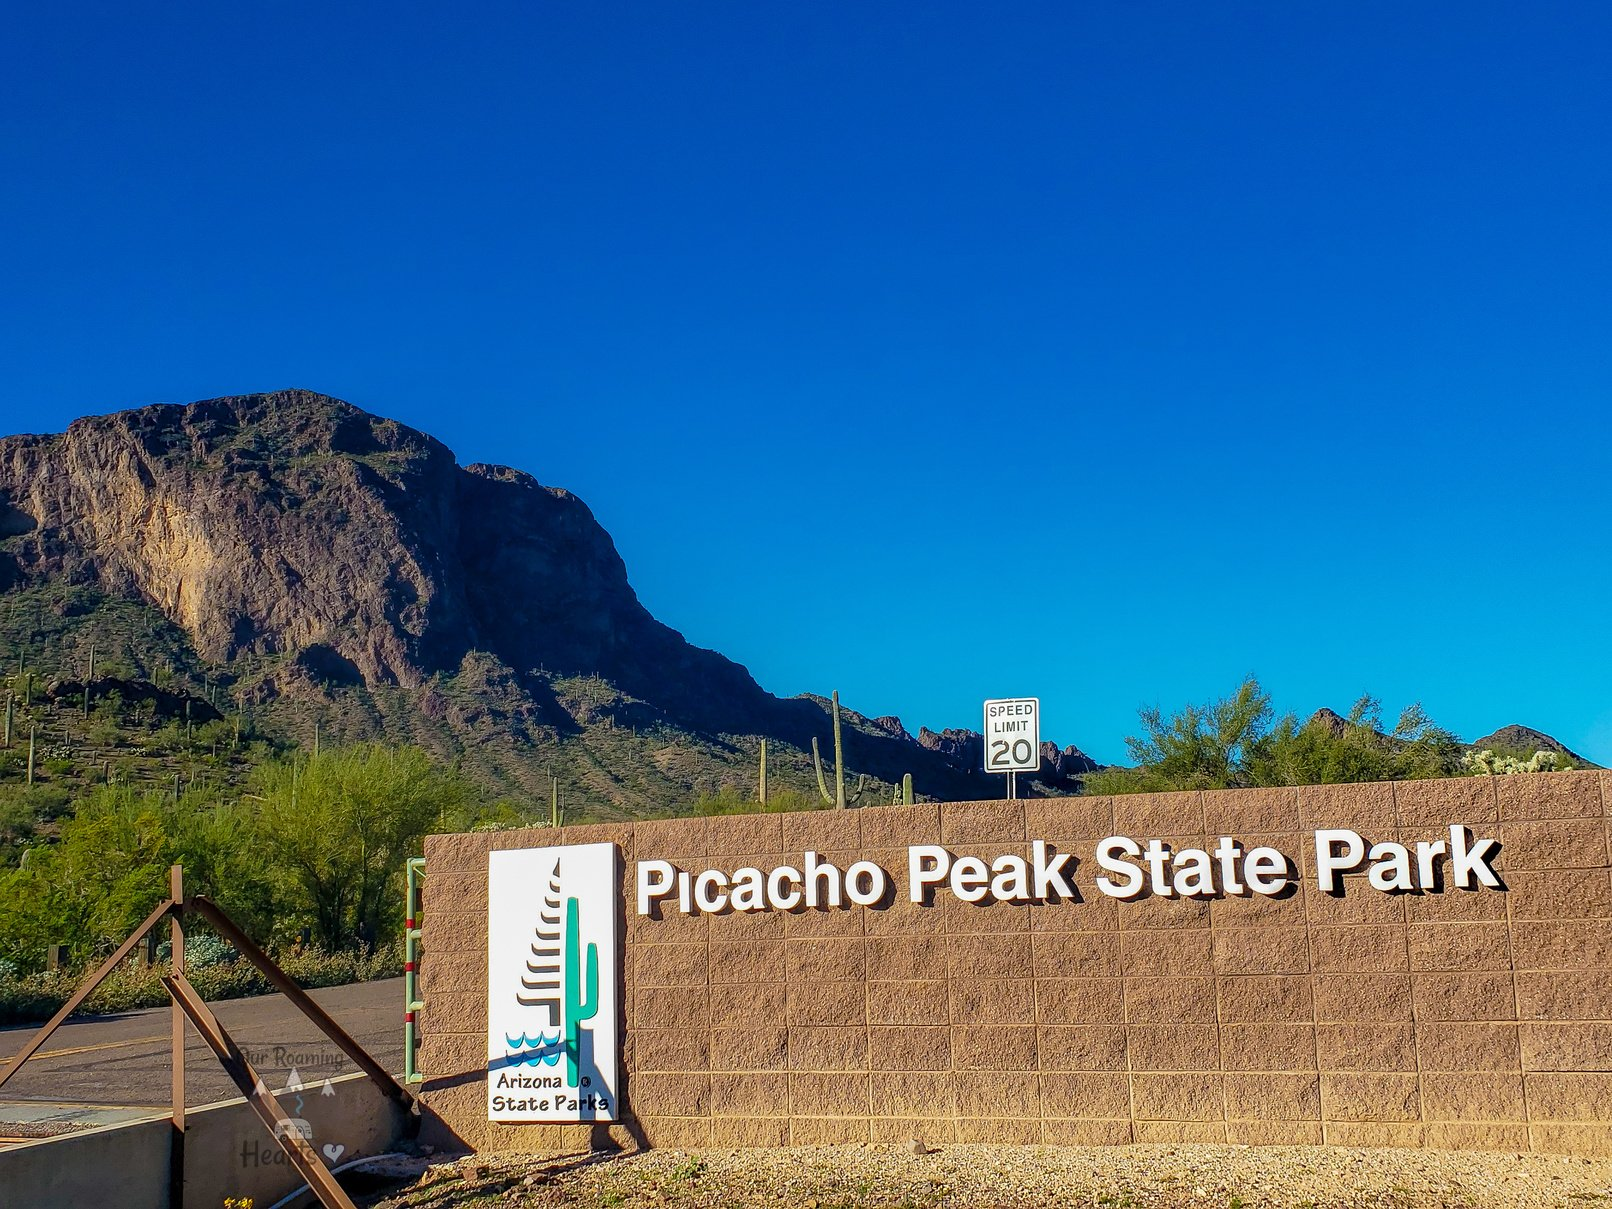 Picacho Peack Arizona State Park